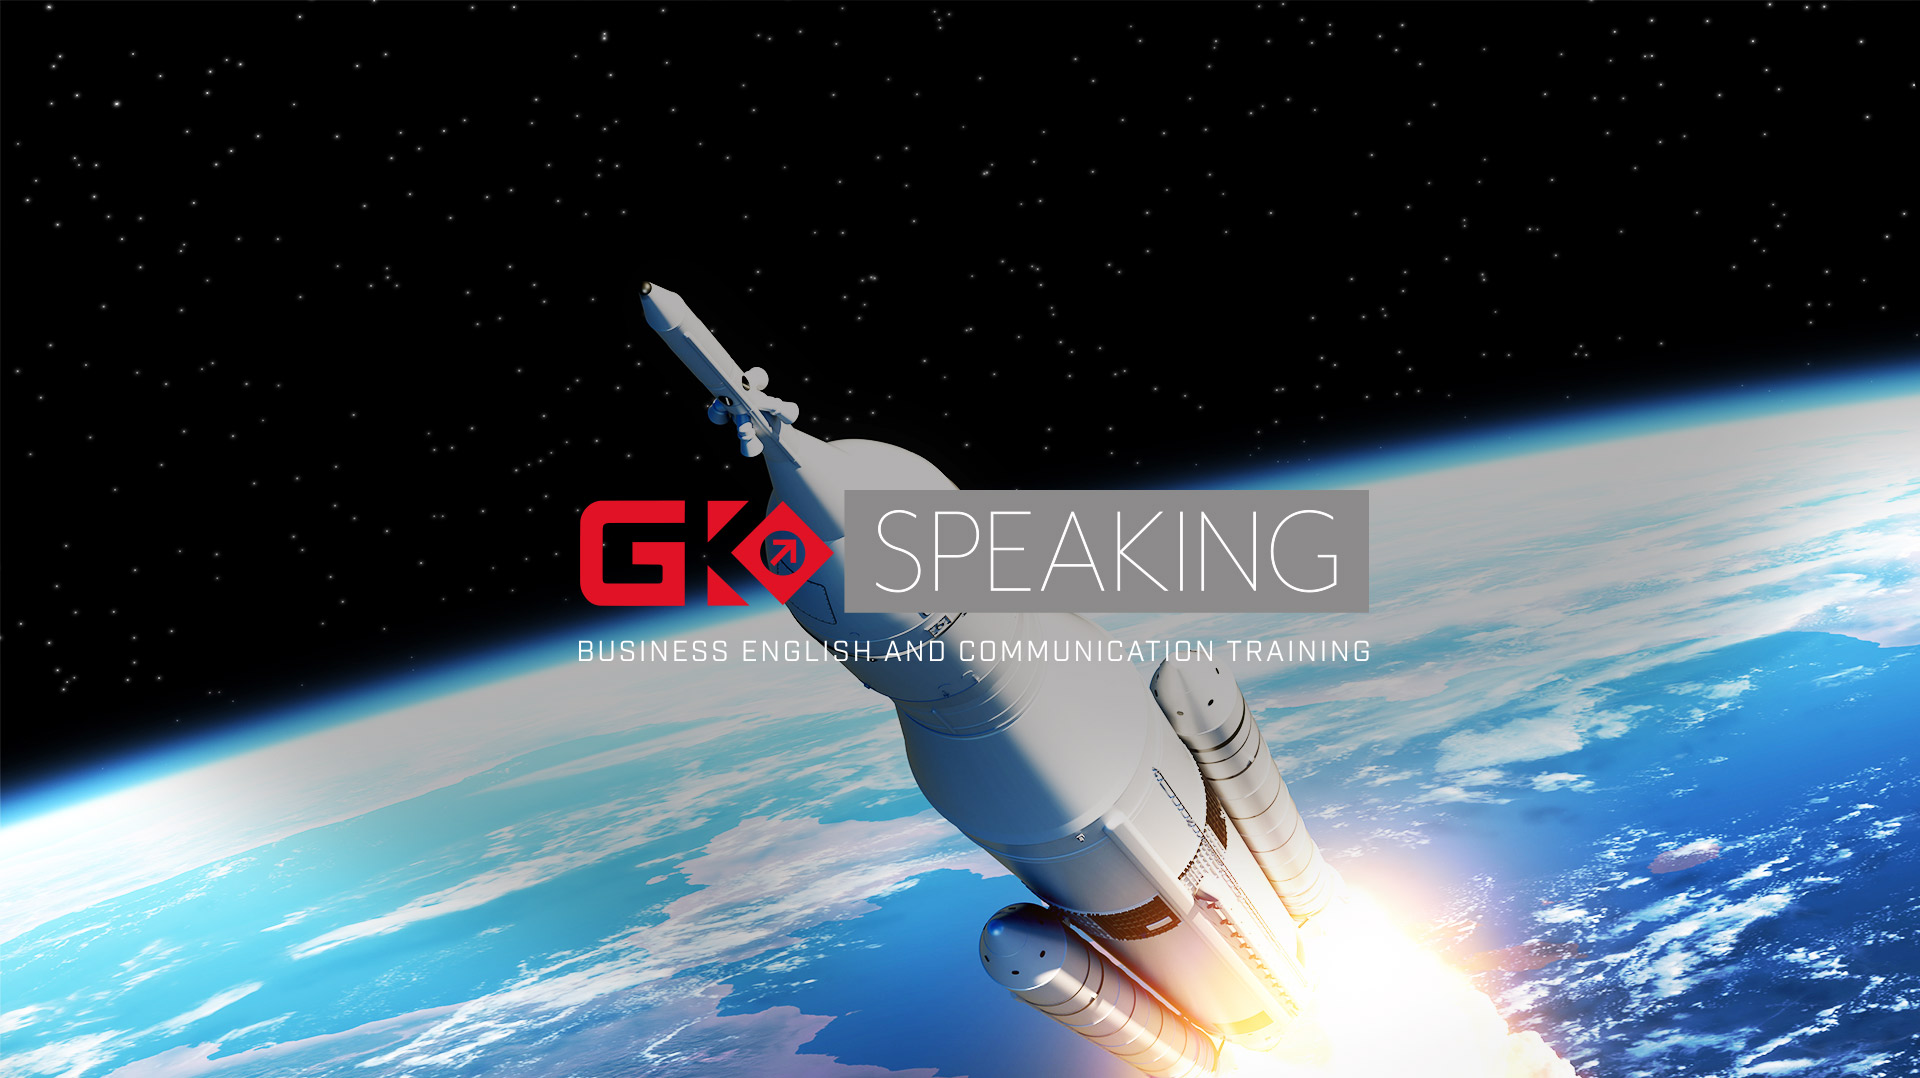 GK-SPEAKING_post-1A_business-english